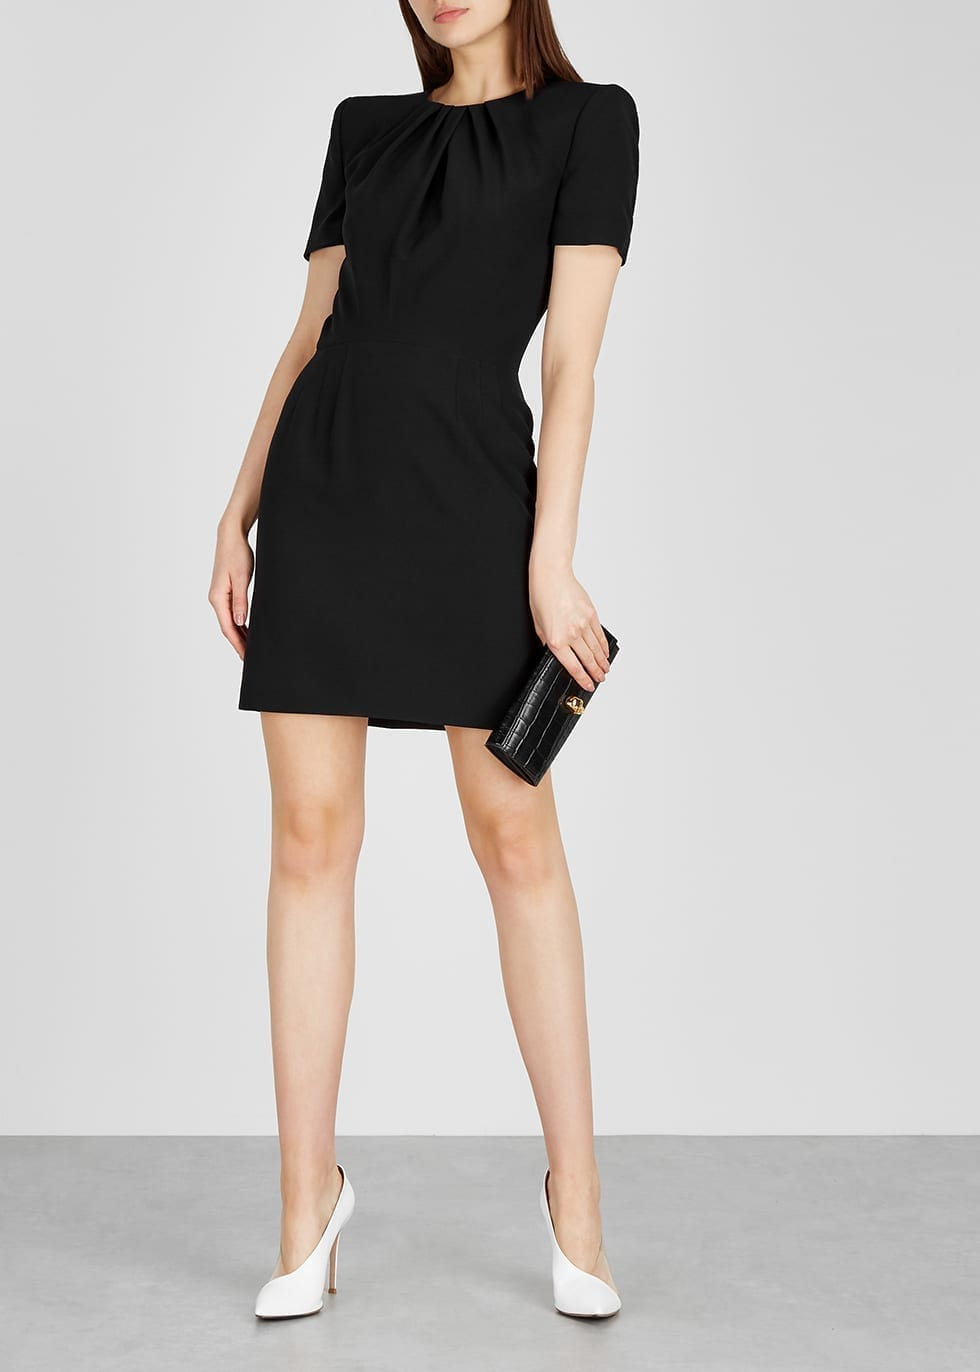 ALEXANDER MCQUEEN Black Crepe Dress